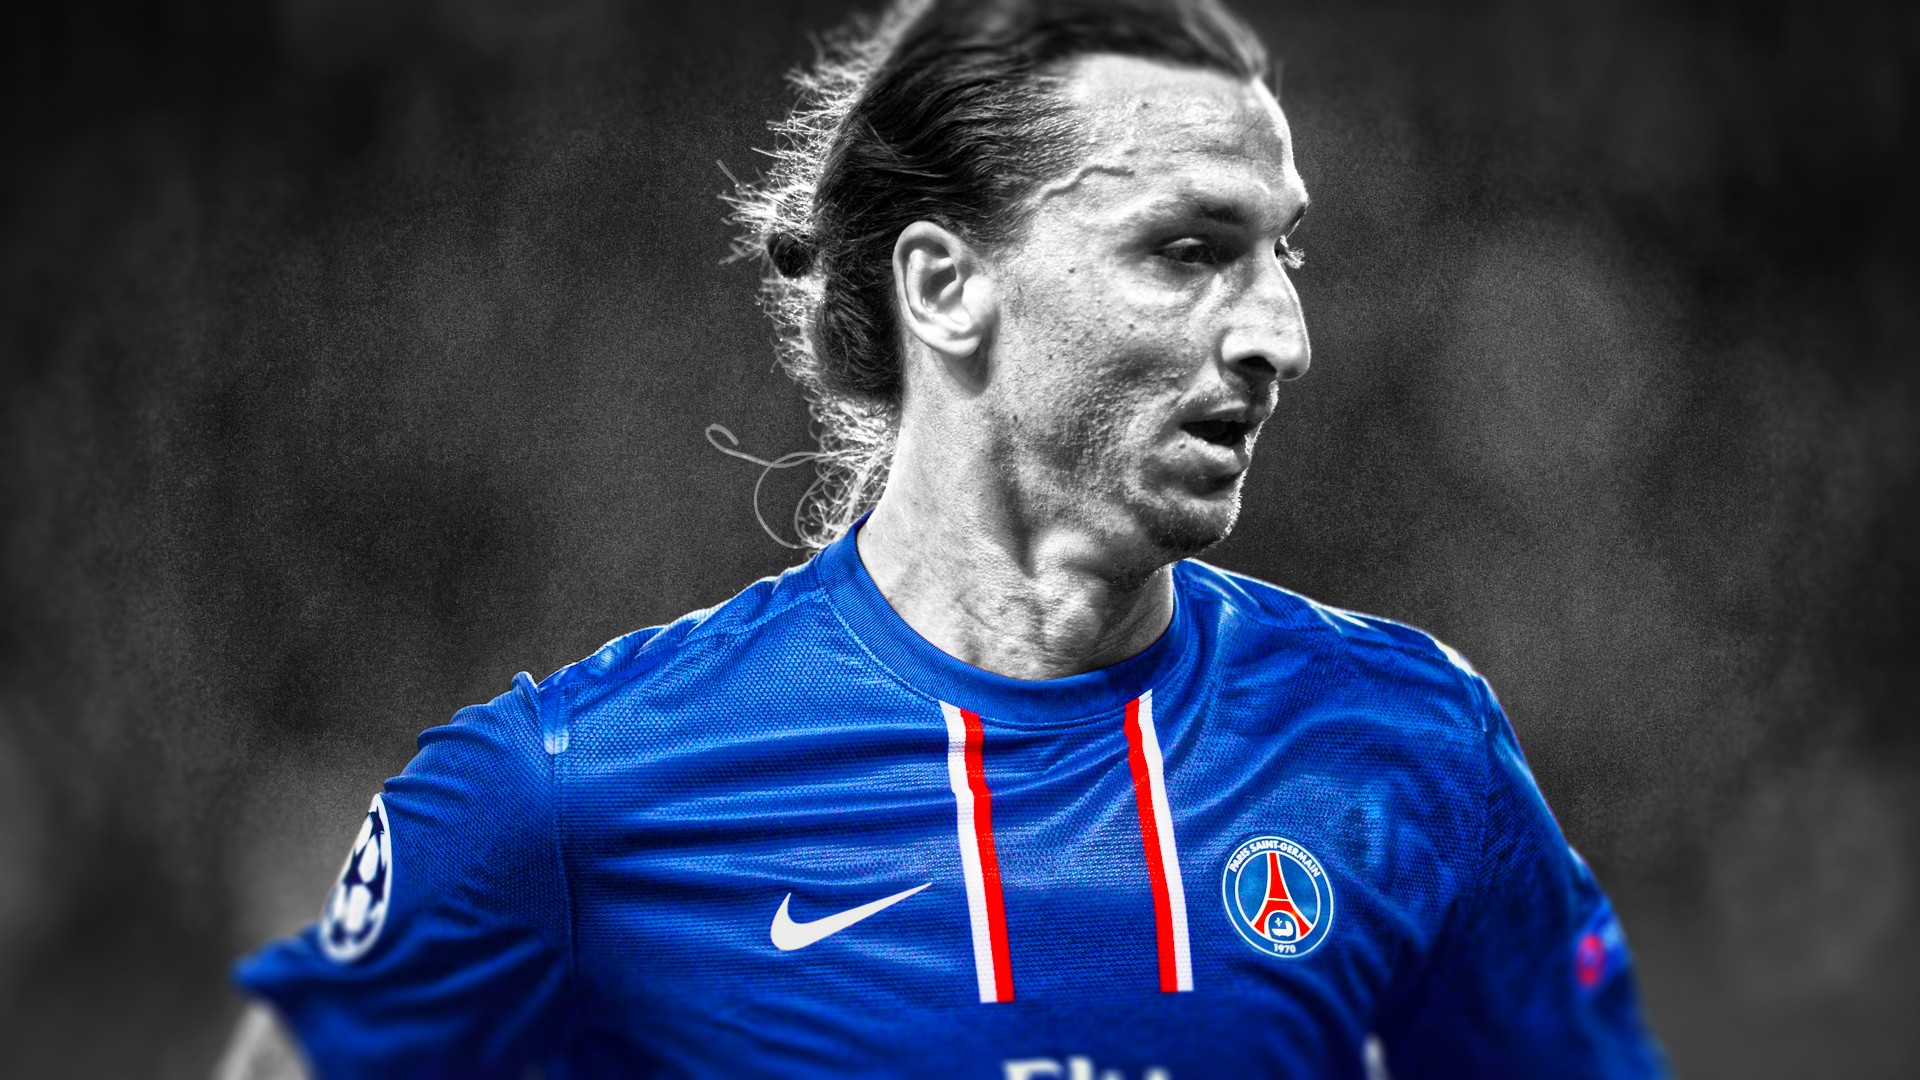 ibrahimovic wallpaper iphone 6